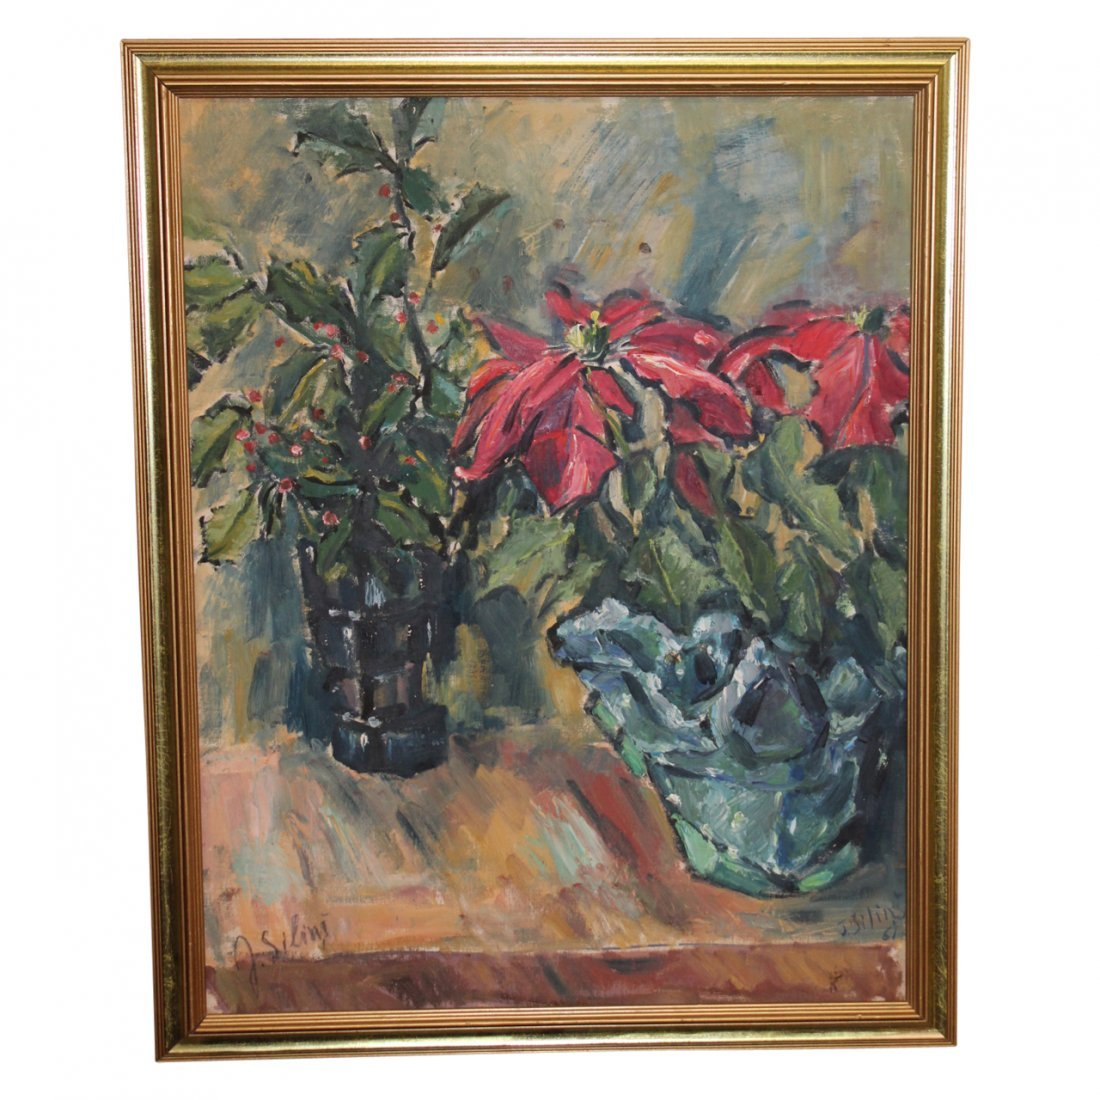 Painting of Flowers by J. Silinis 1961